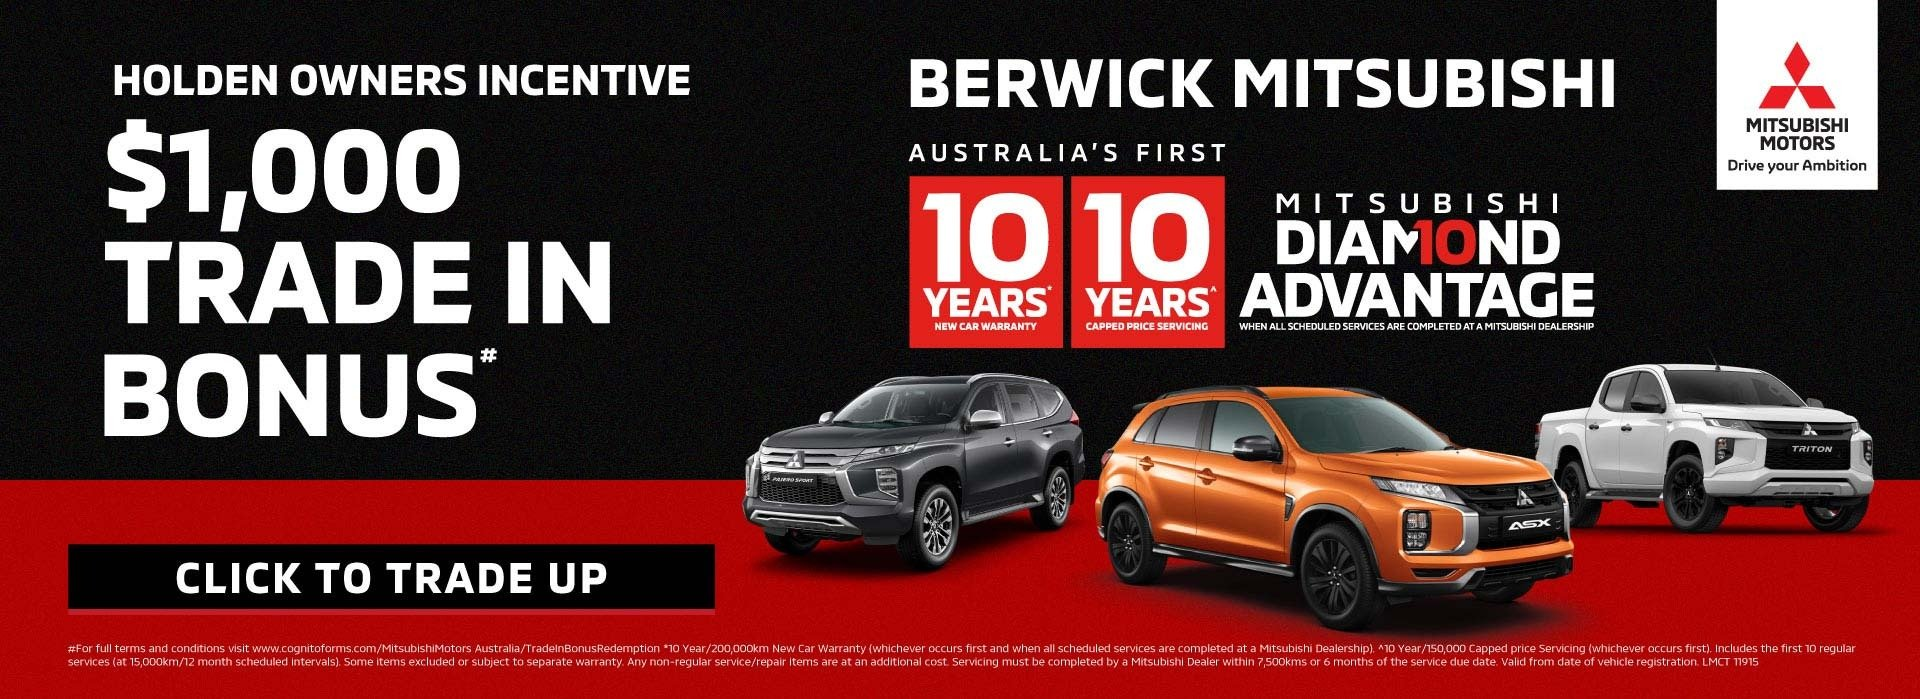 Berwick Mitsubishi Holden Owners Incentive Trade-in Offer